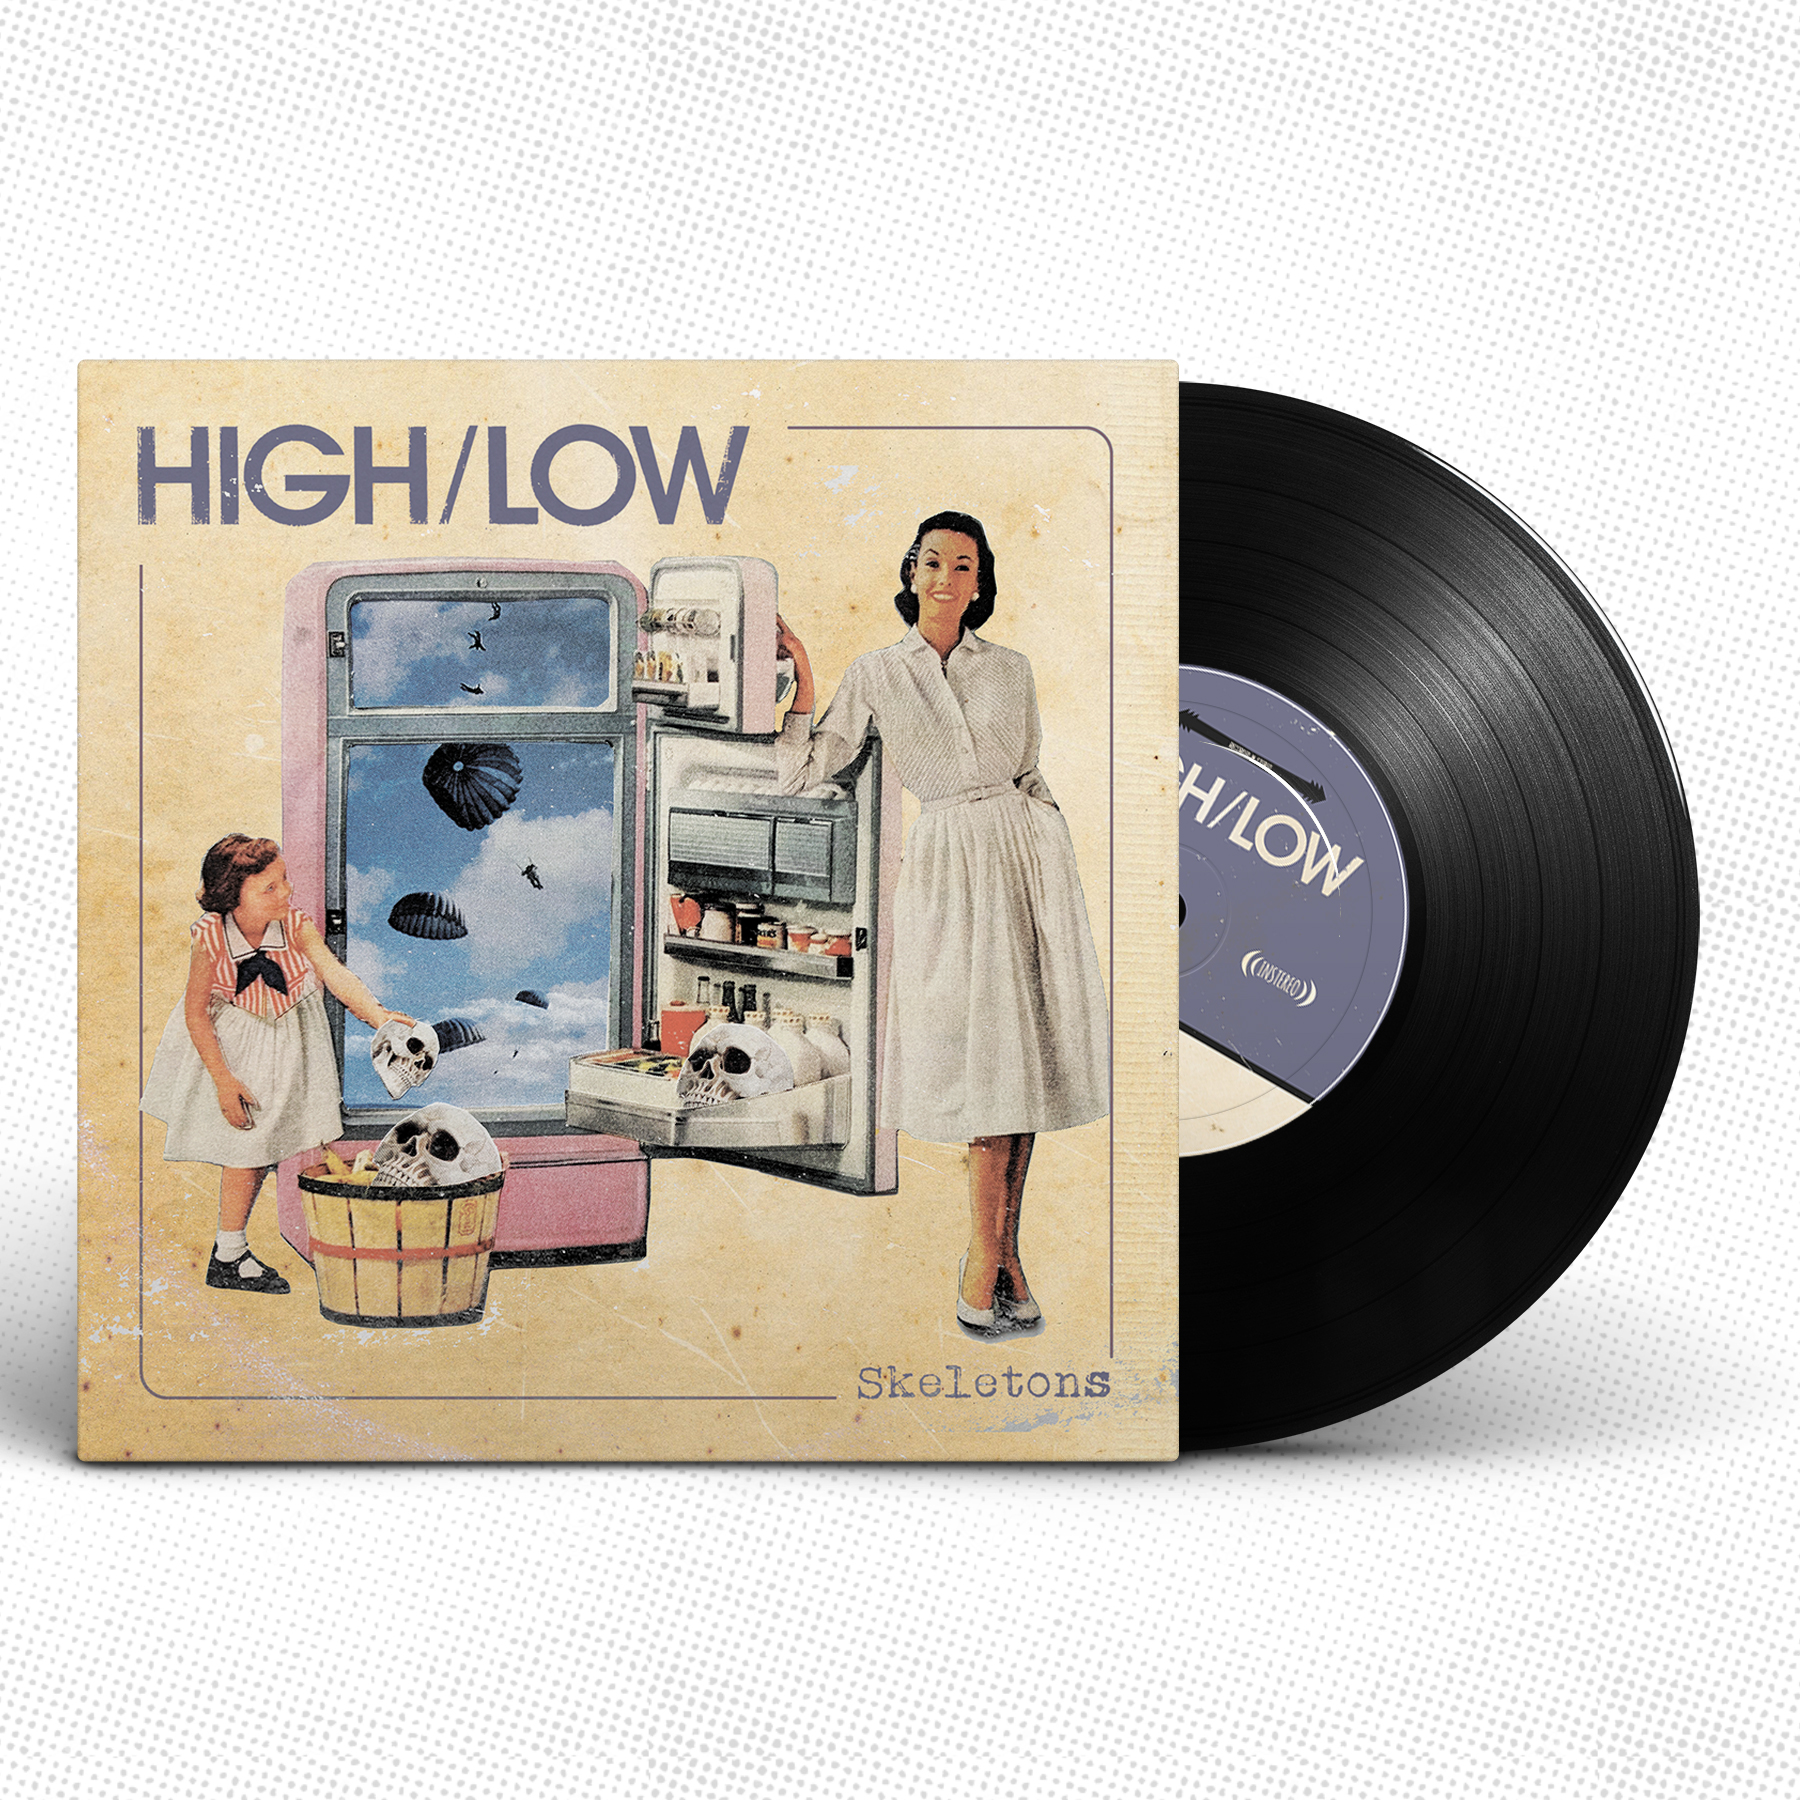 highlow-skeletons-vinyl